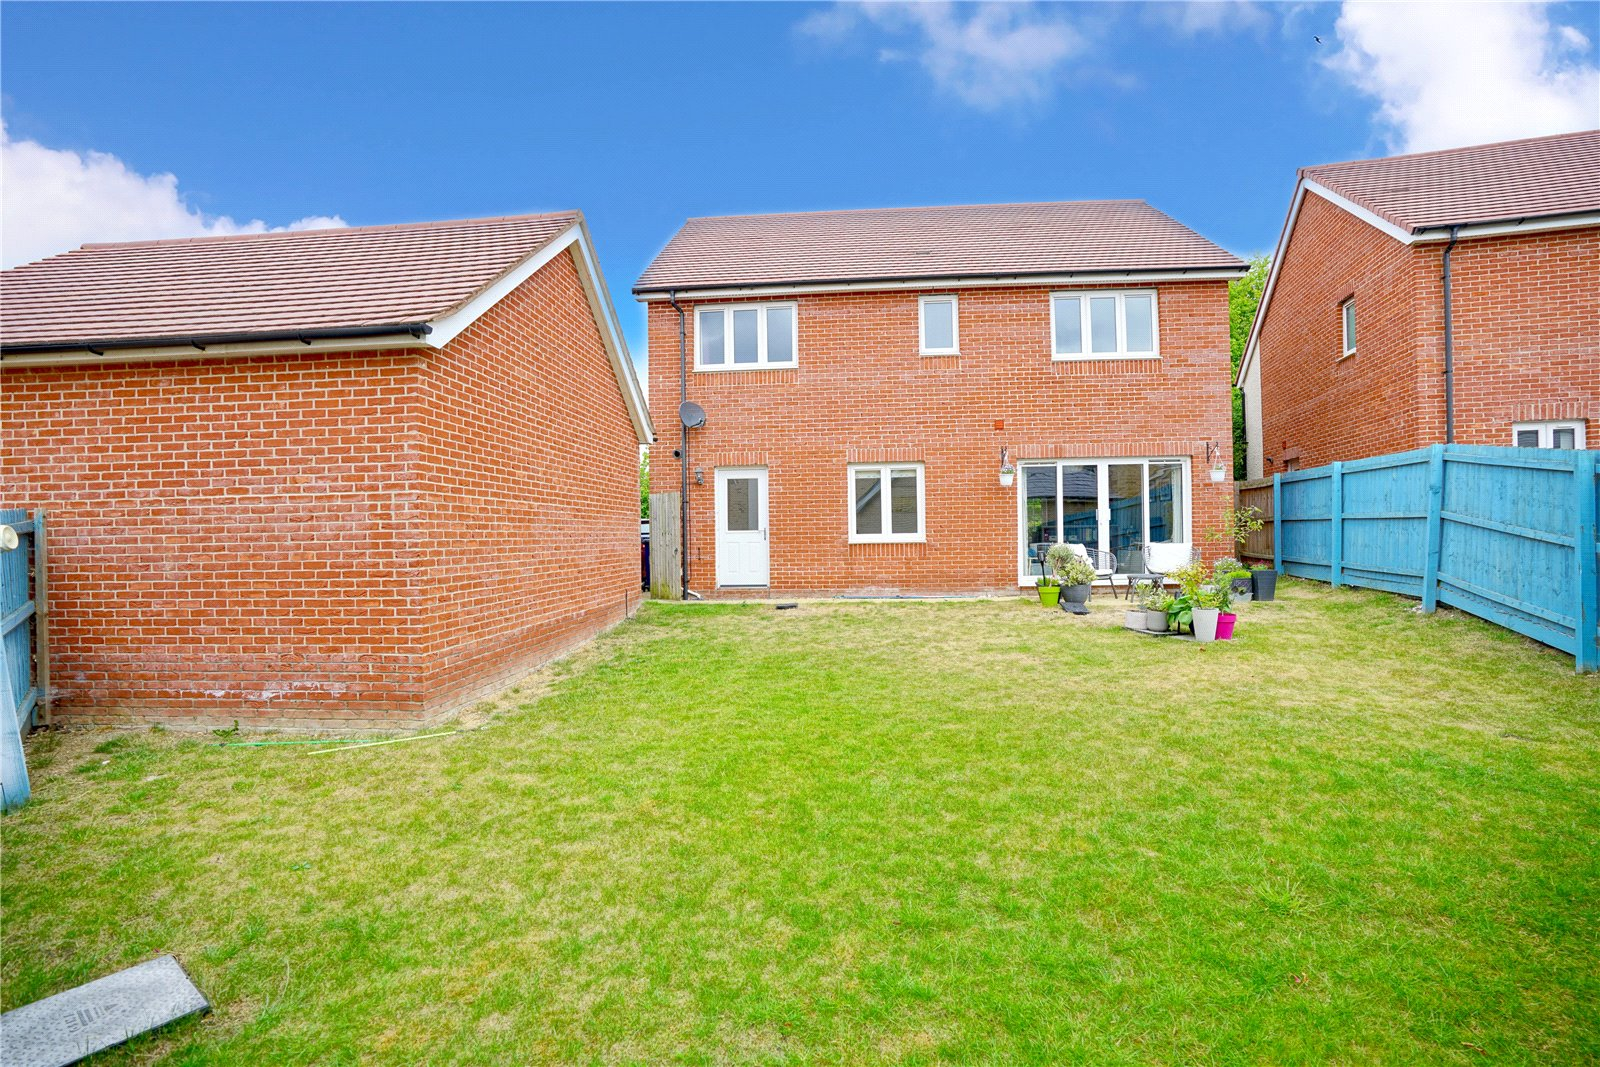 4 bed house for sale in Field Gate Close, St. Neots 13